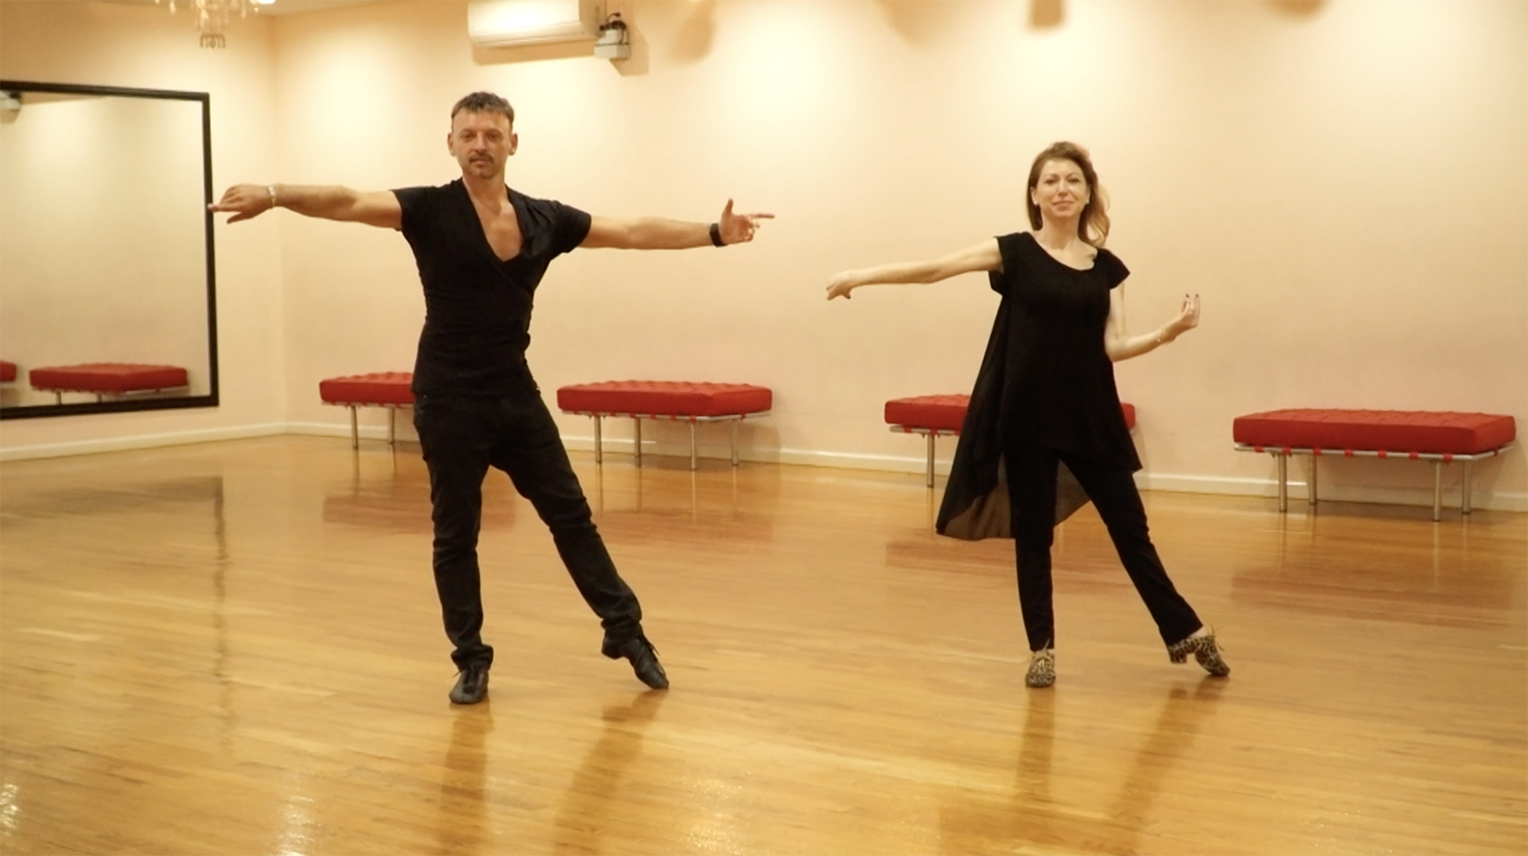 Solo Rumba Exercise